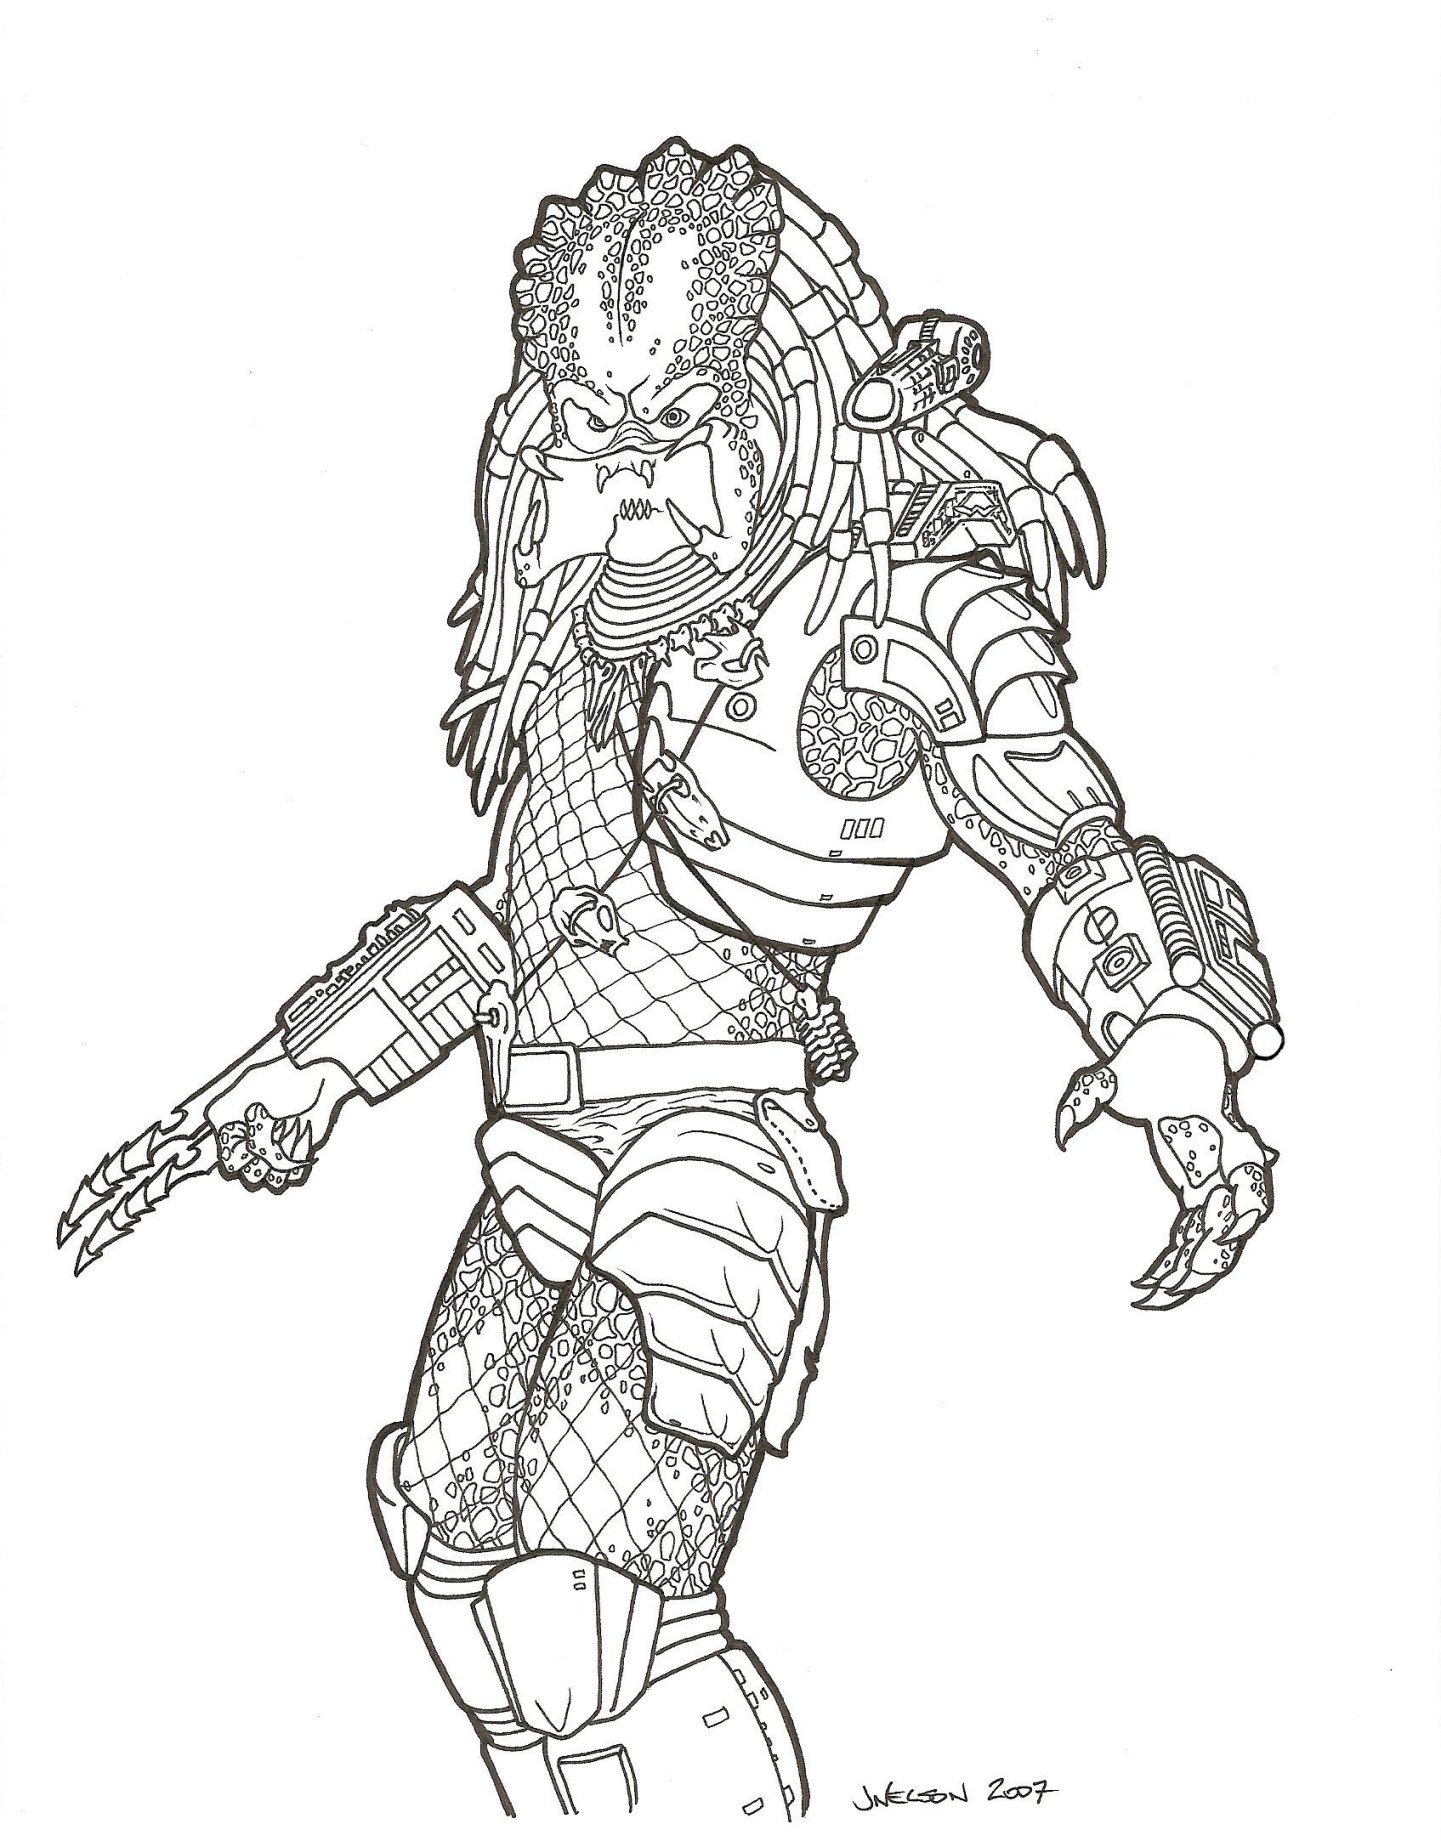 Predator Coloring Pages. coloring pages. drawnwest caveman in ...